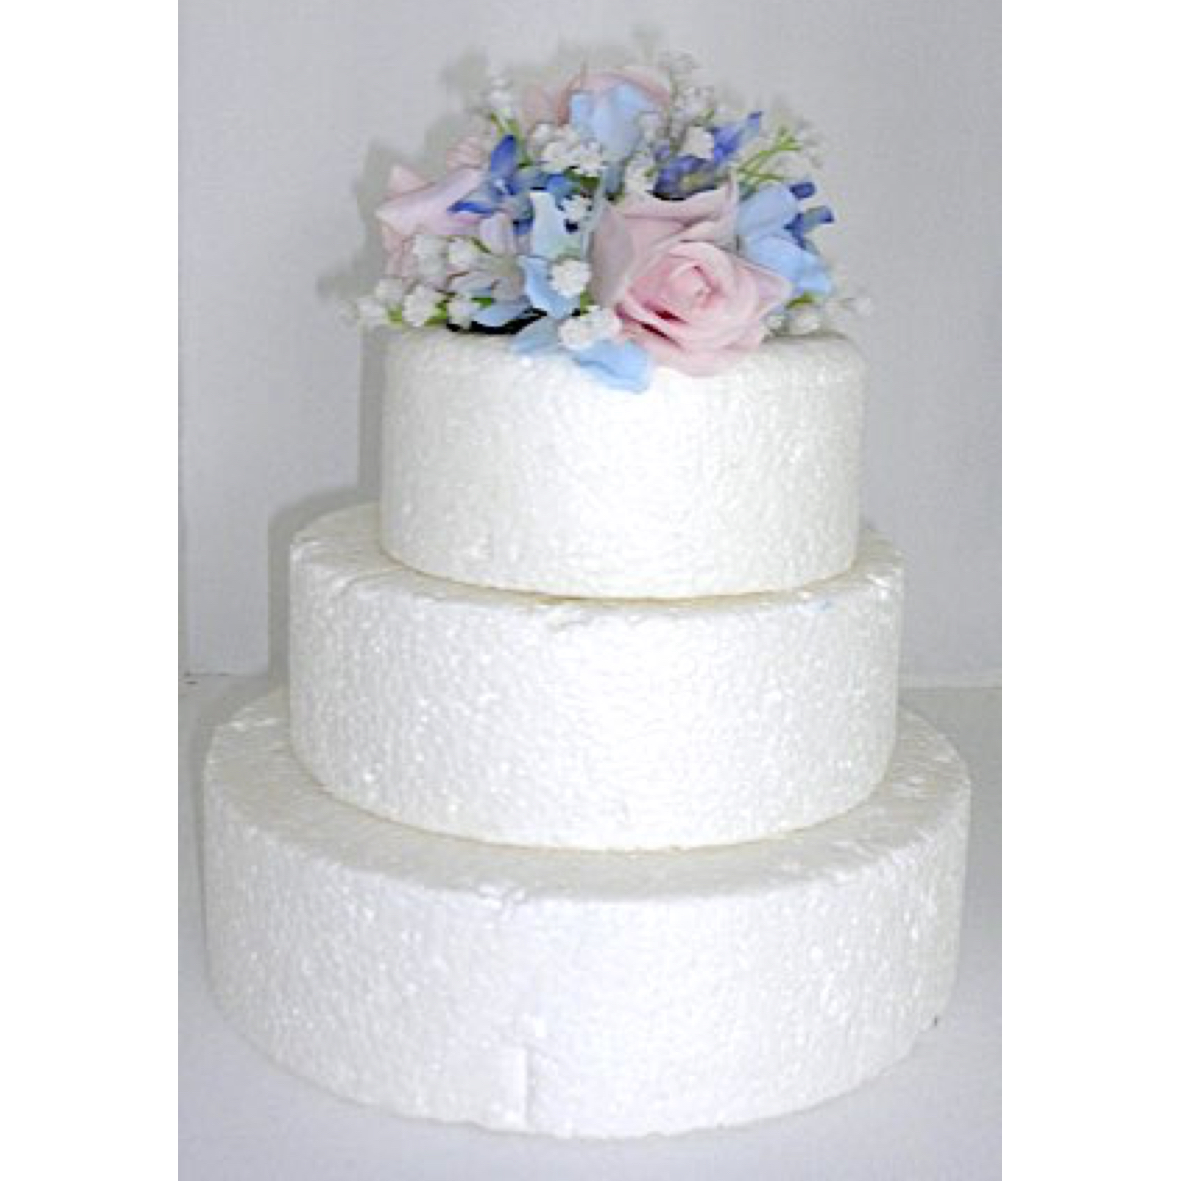 Pink & Blue Cake Flowers